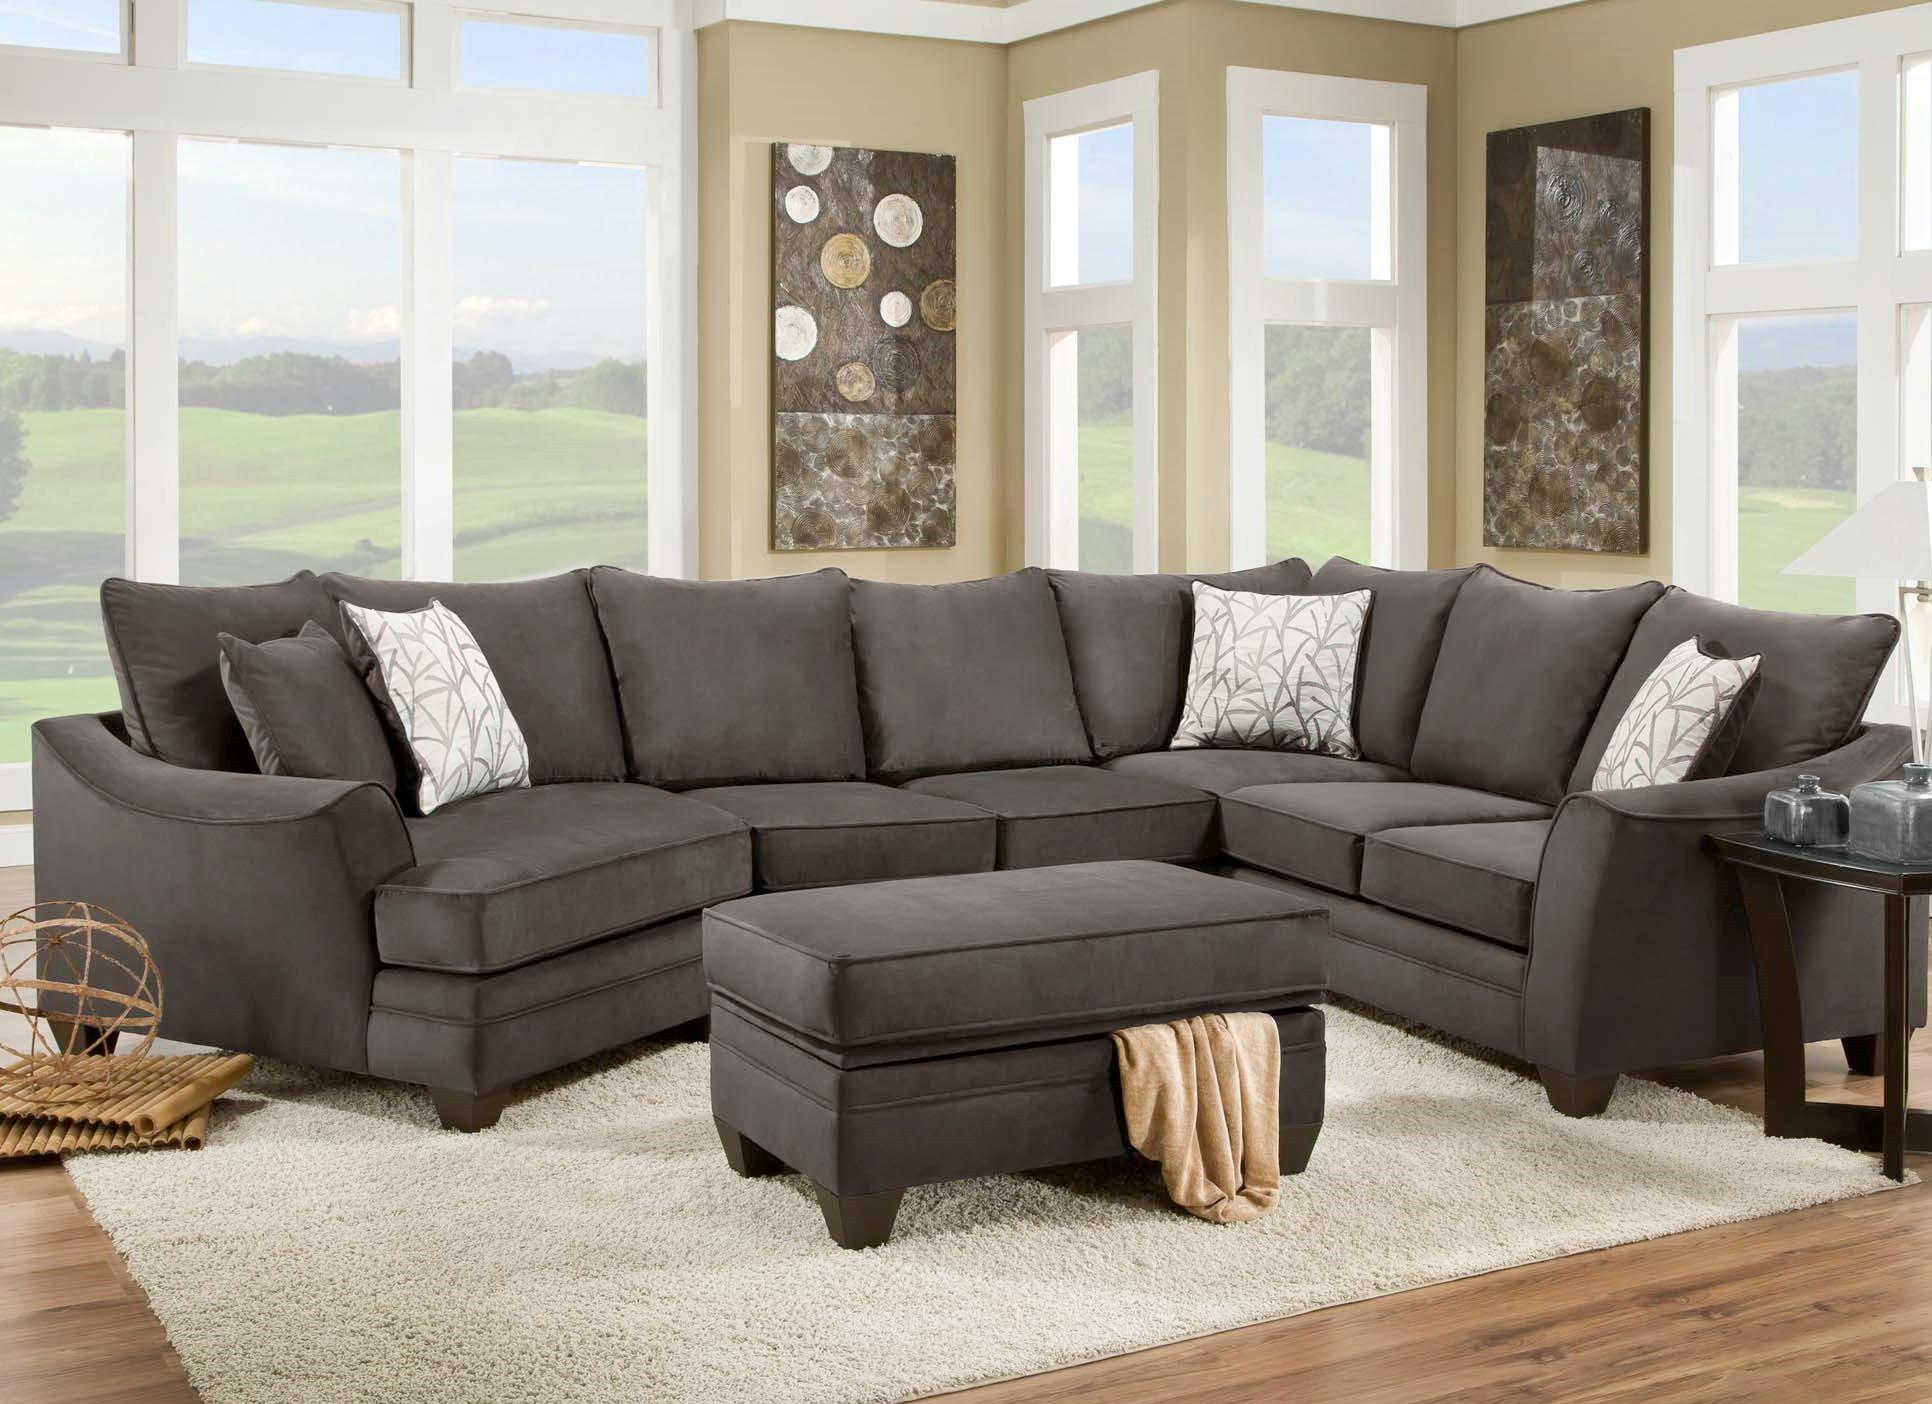 Genial American Furniture 3810 Sectional Sofa   Item Number: 3810 38142240 FLANNEL  SEAL